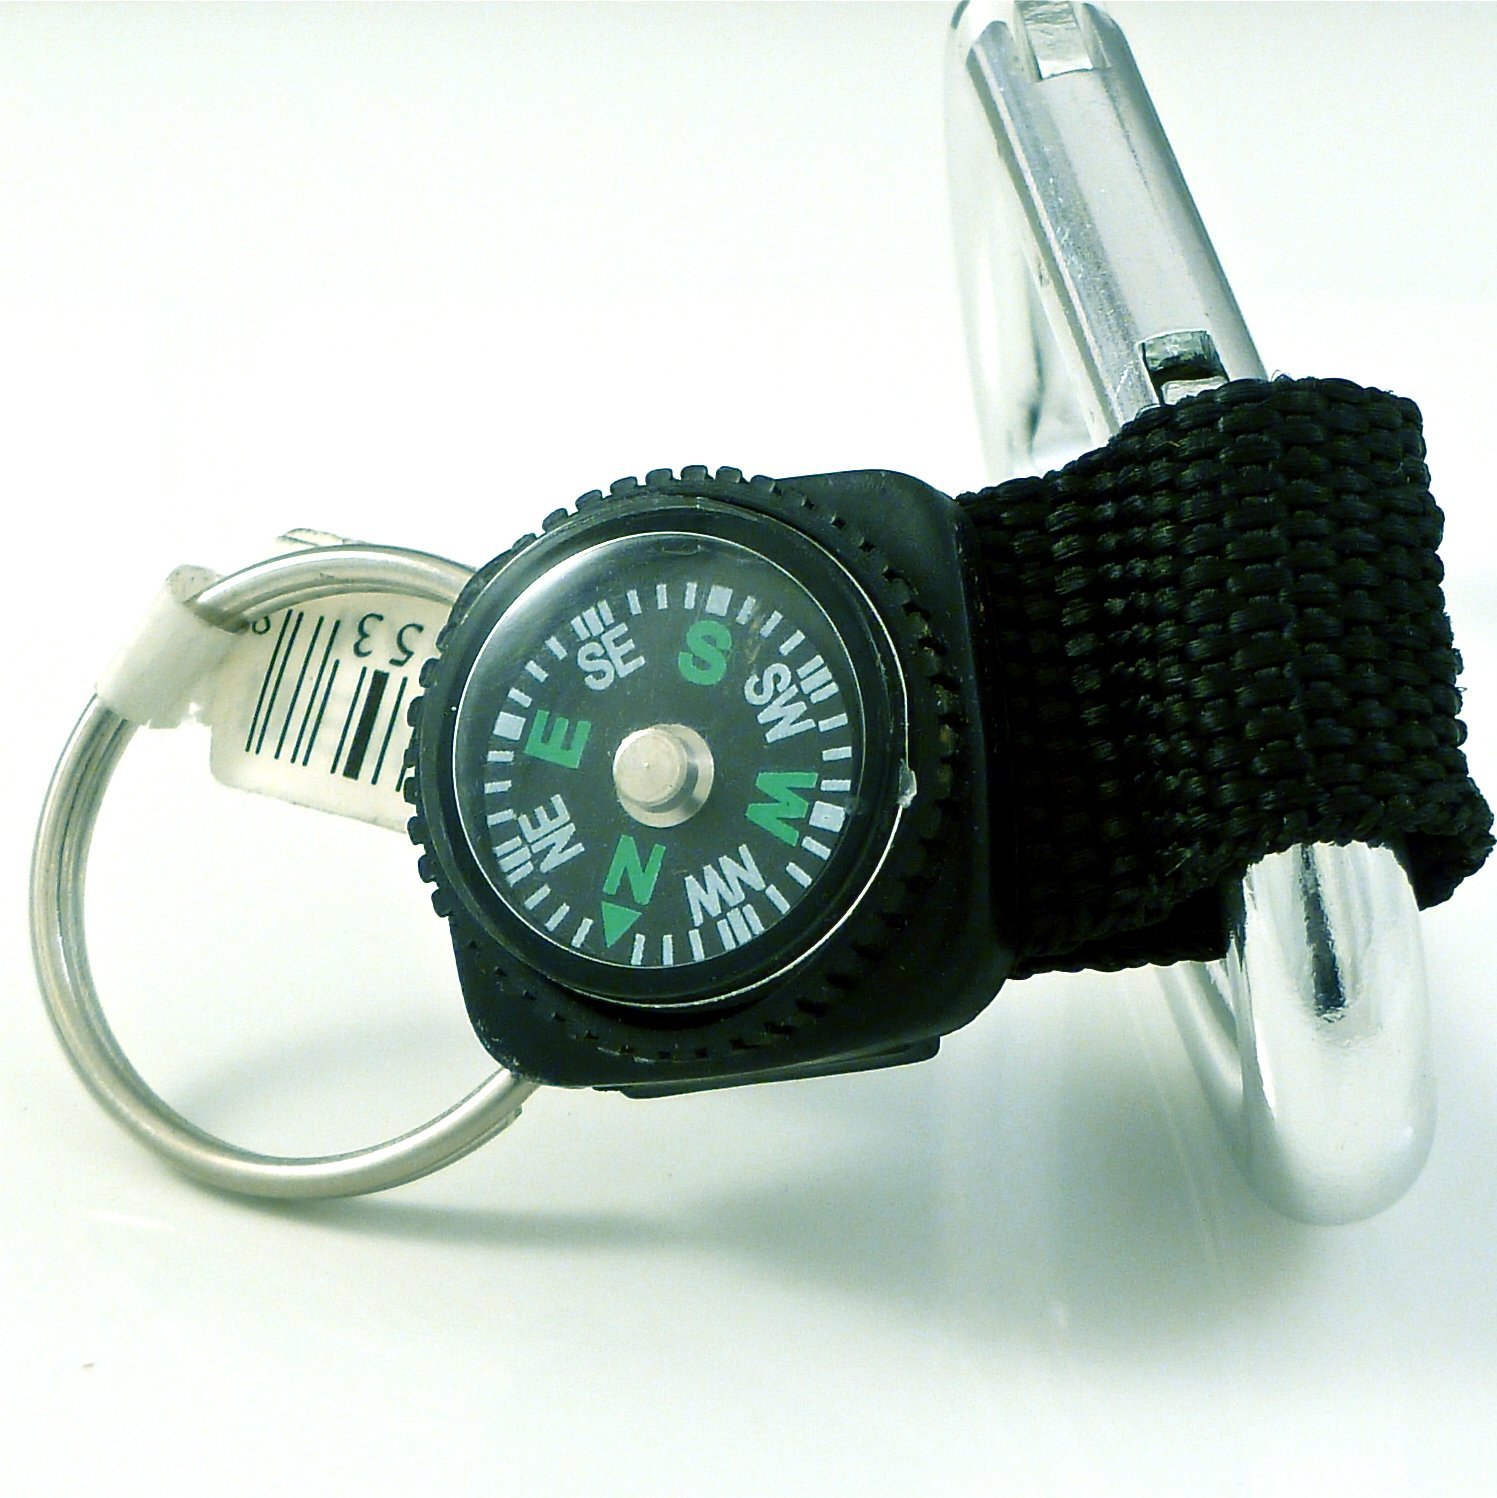 Carabiner Key Chain with Compass -01